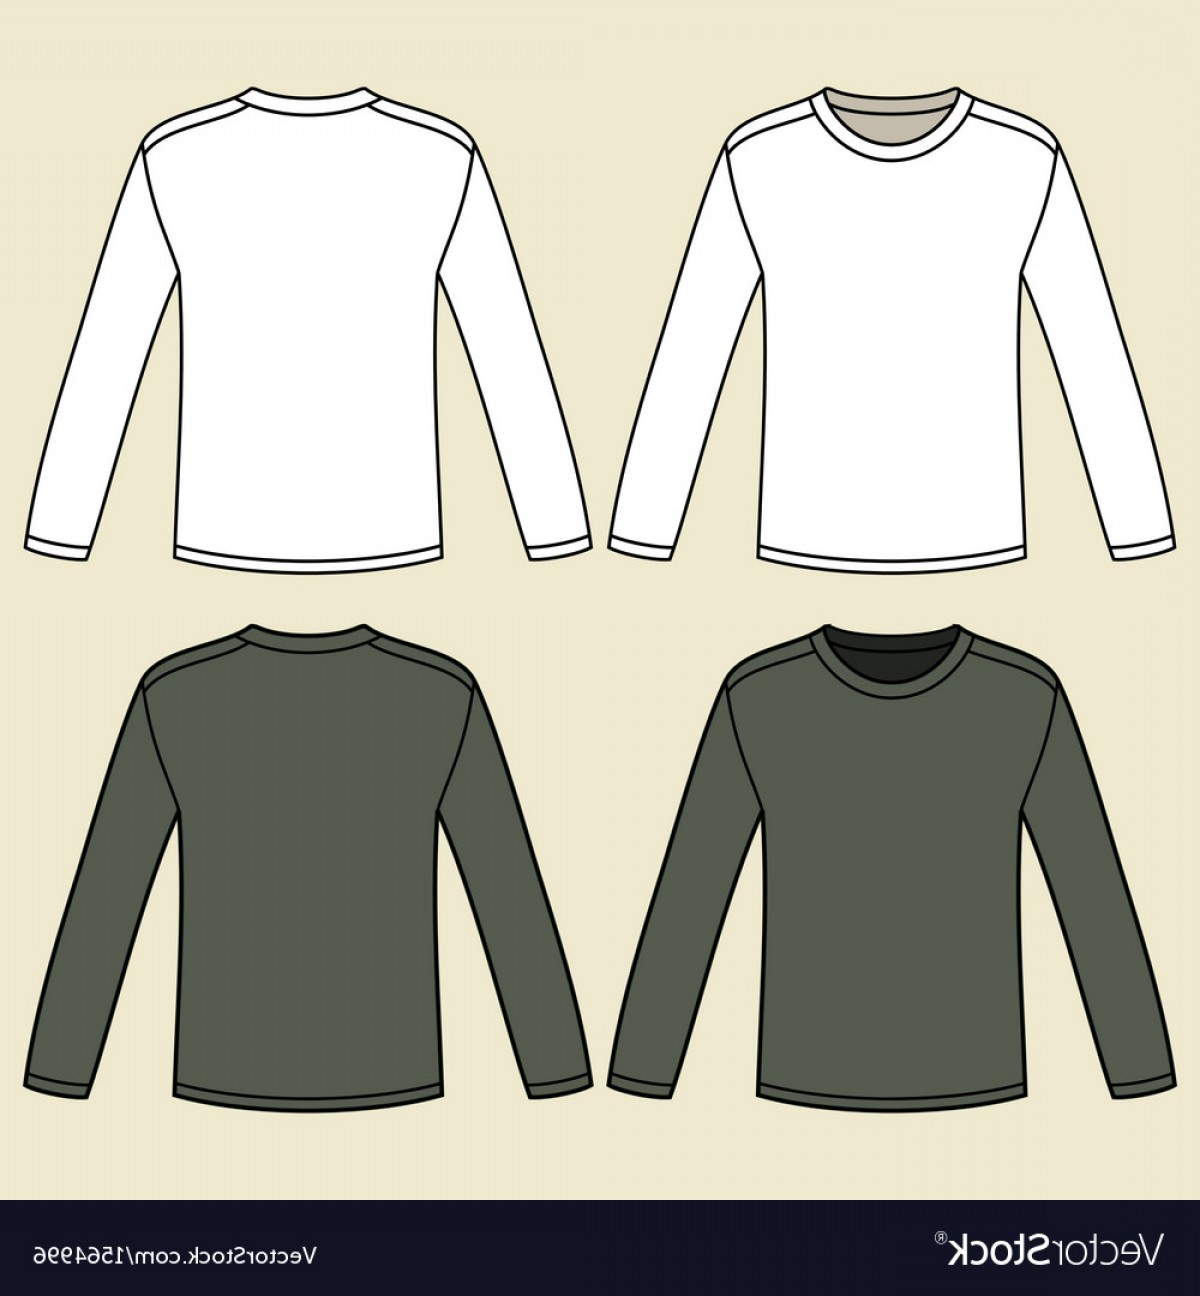 Long Sleeve Jersey Vector Template: Blank Long Sleeved T Shirts Template Vector